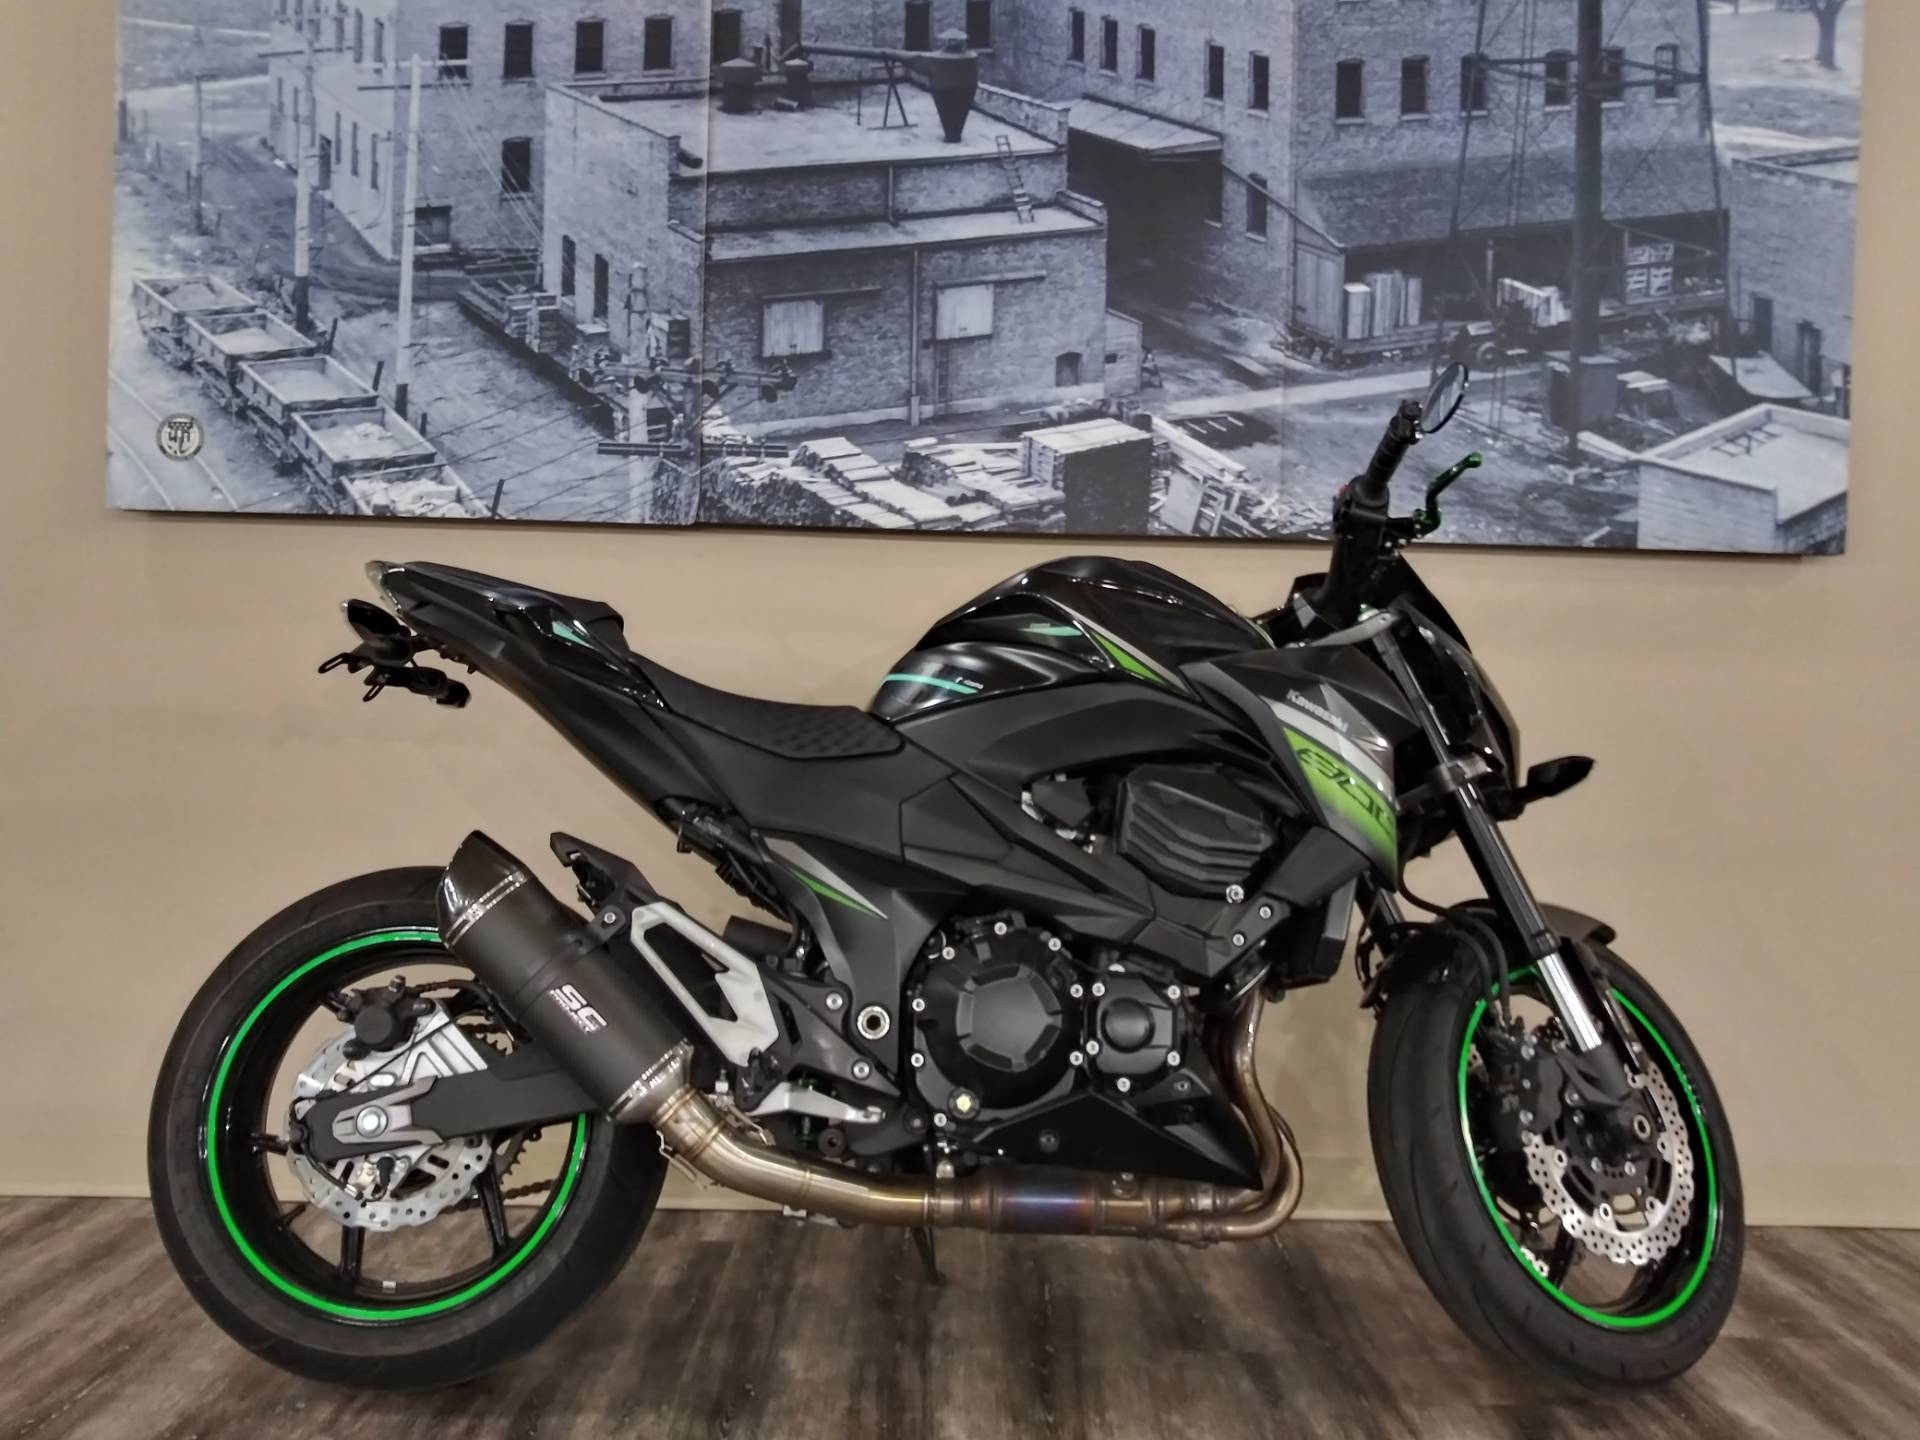 2016 Kawasaki Z800 ABS in Knoxville, Tennessee - Photo 1